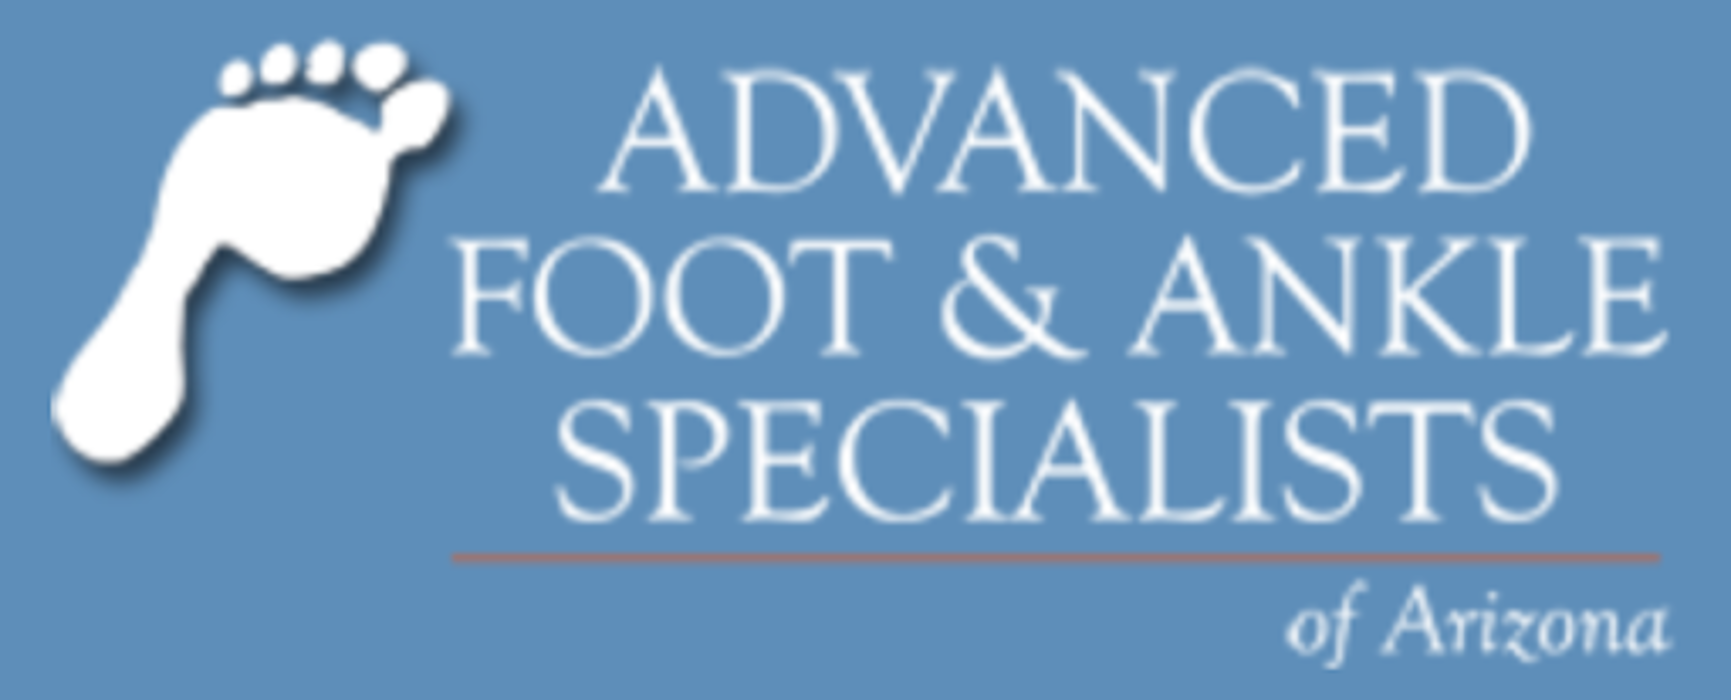 Advanced Foot & Ankle Specialists of Arizona - Chandler, AZ